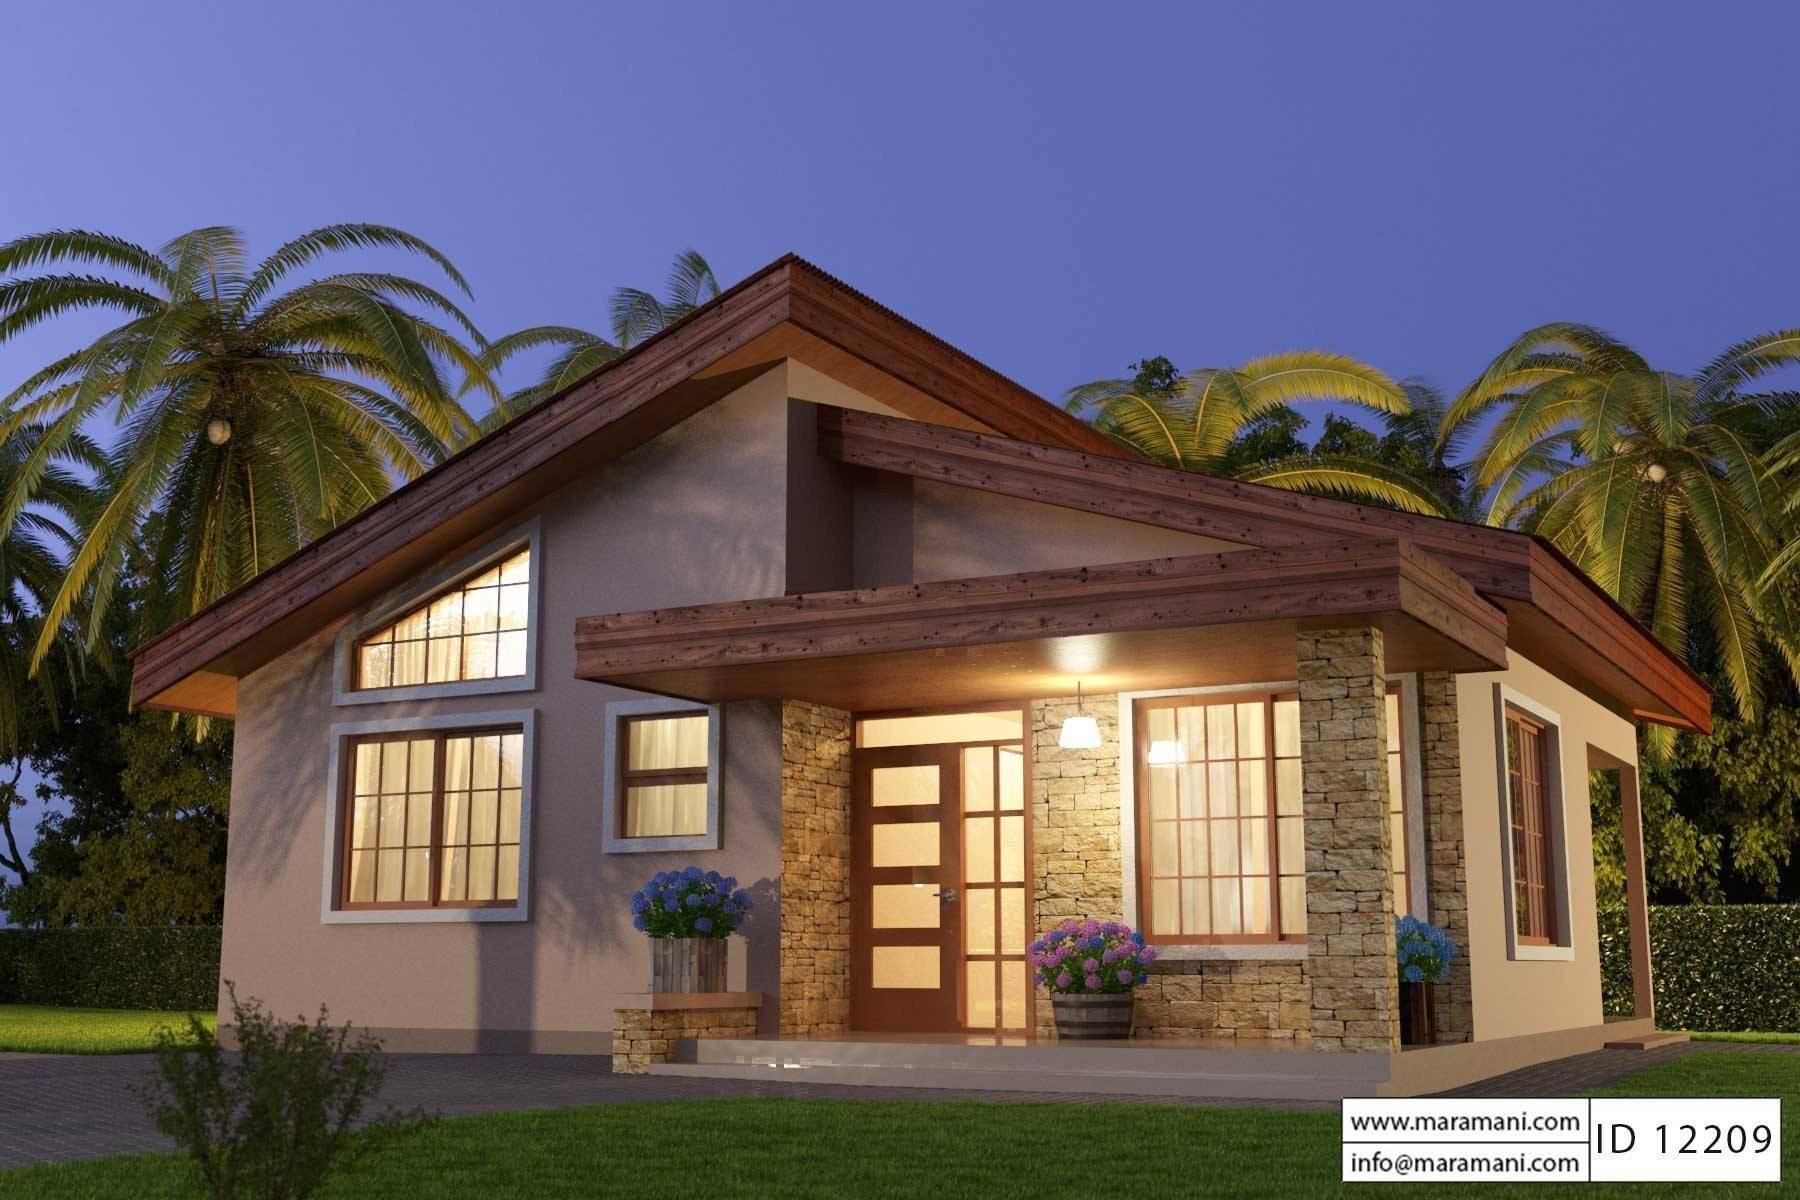 2 Bedroom House Plans Designs For Africa Maramani Com